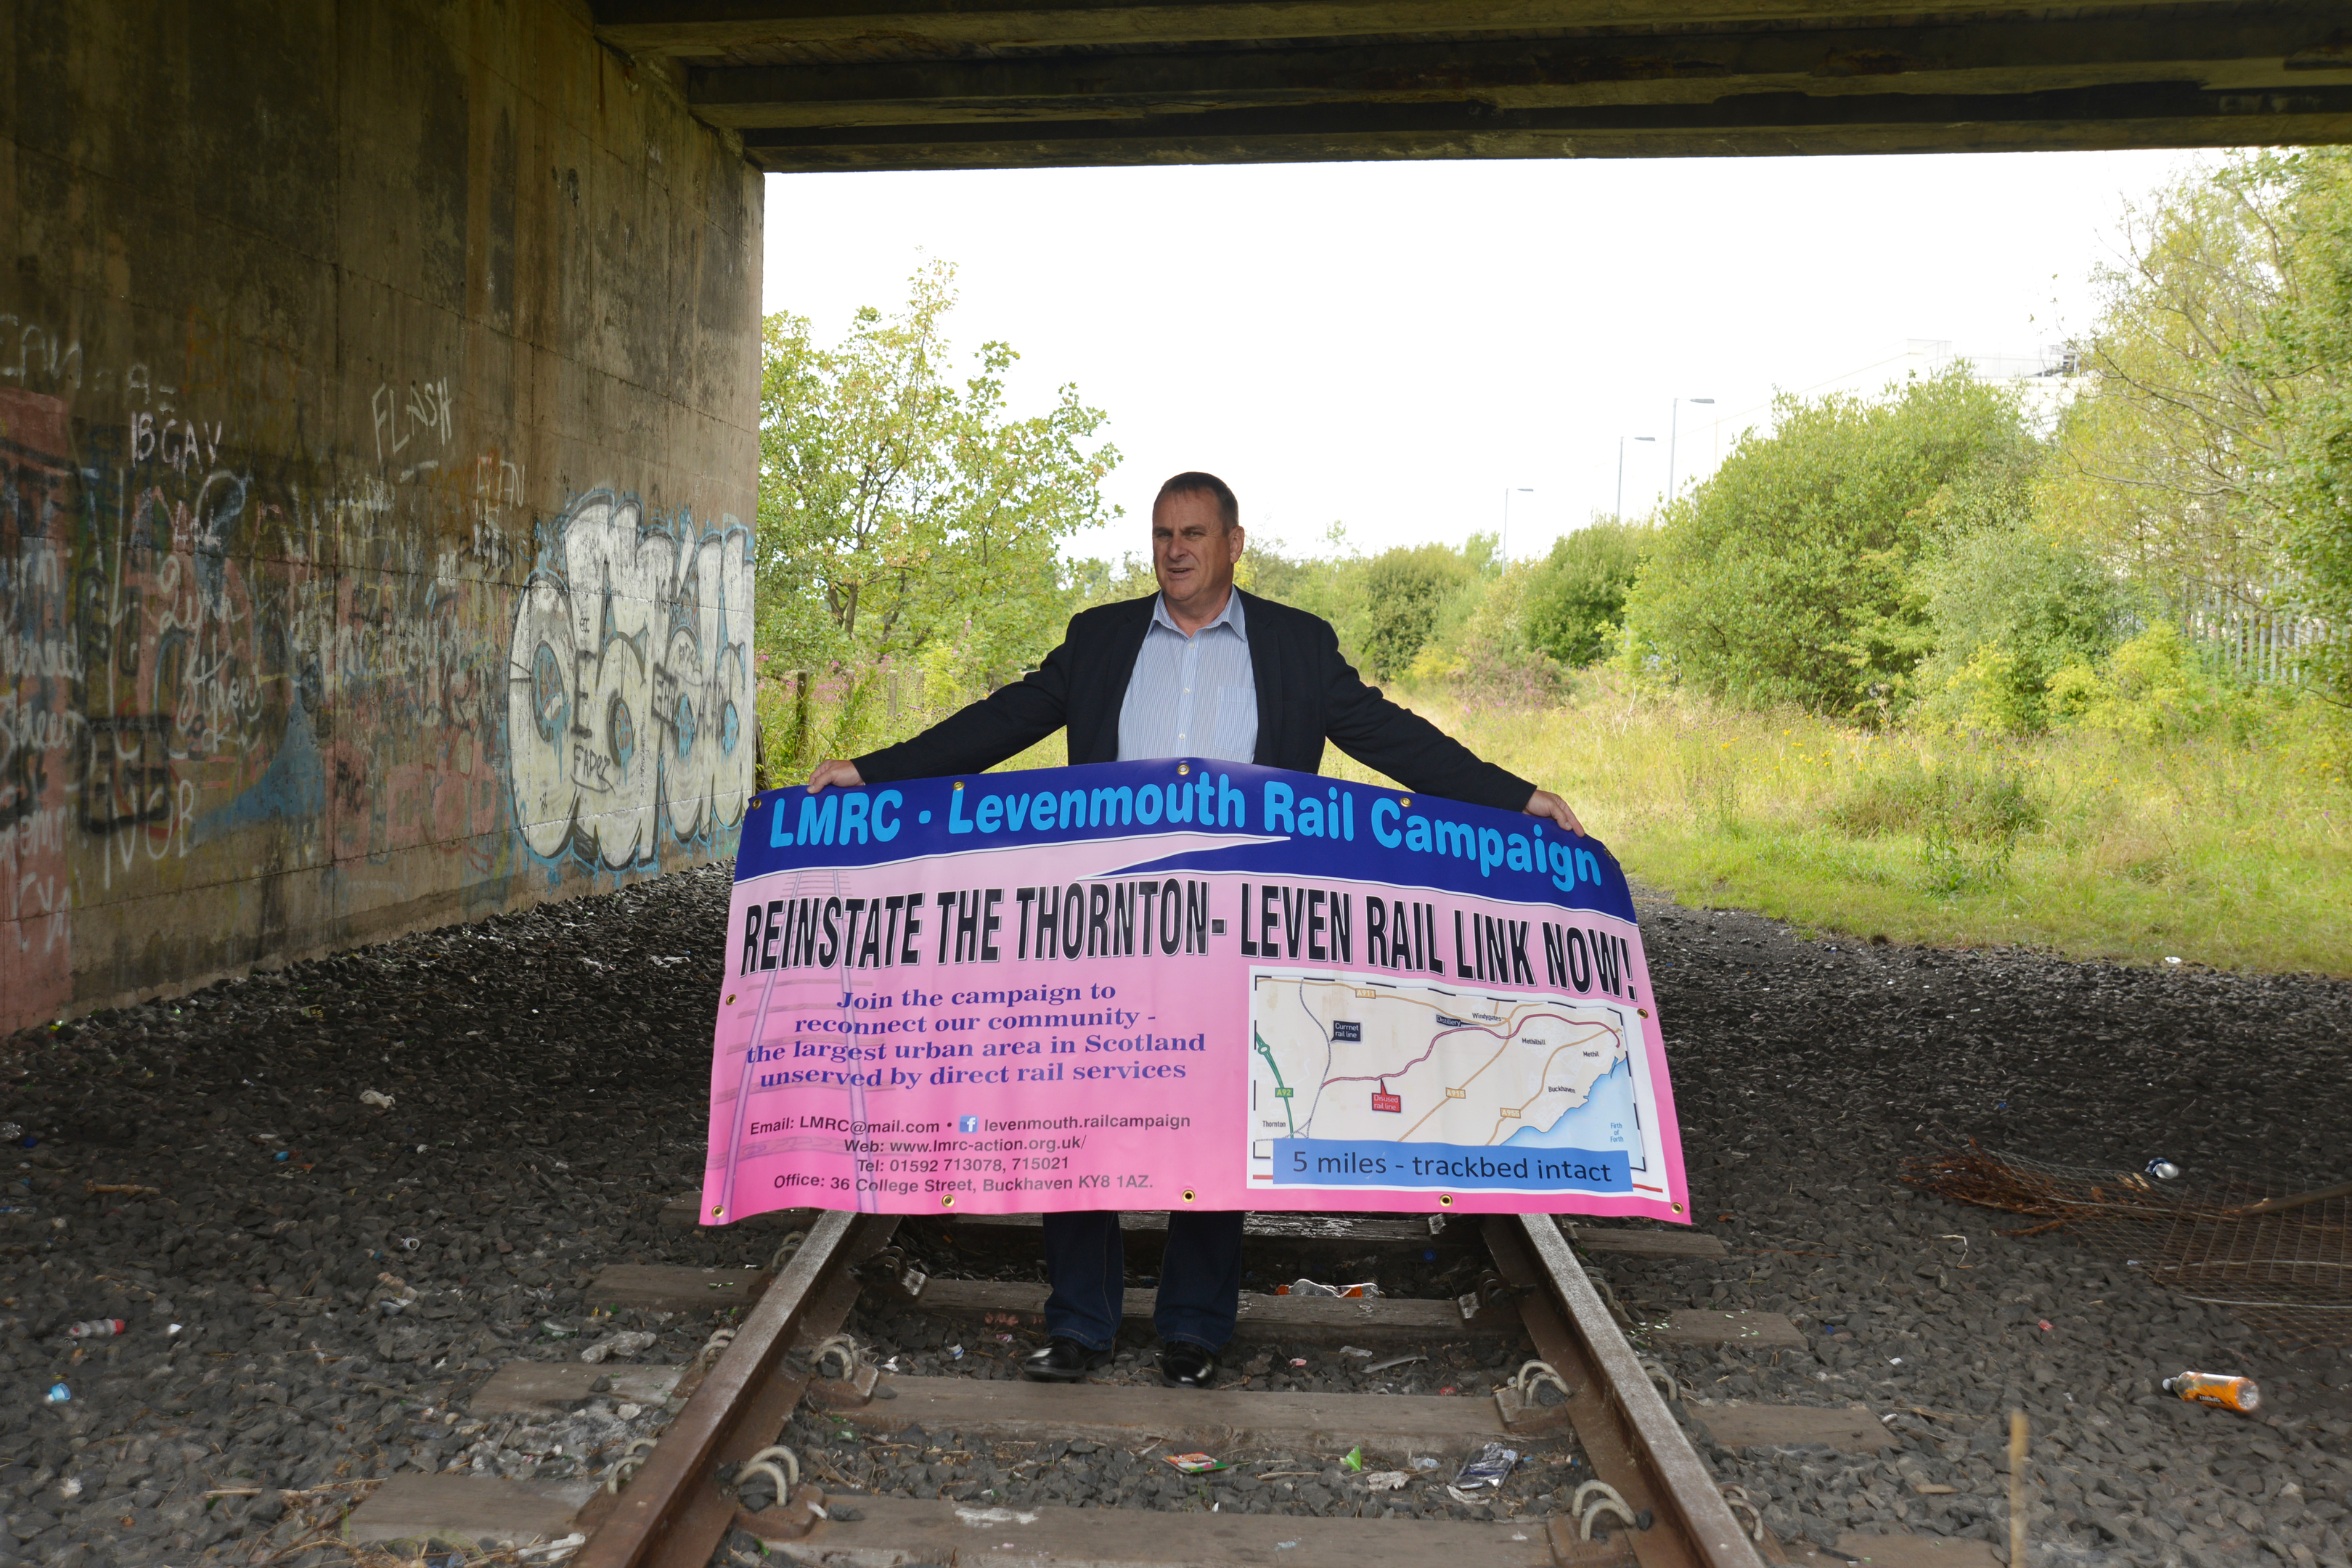 Ross Bennett of LMRC is one of those calling for the rail link